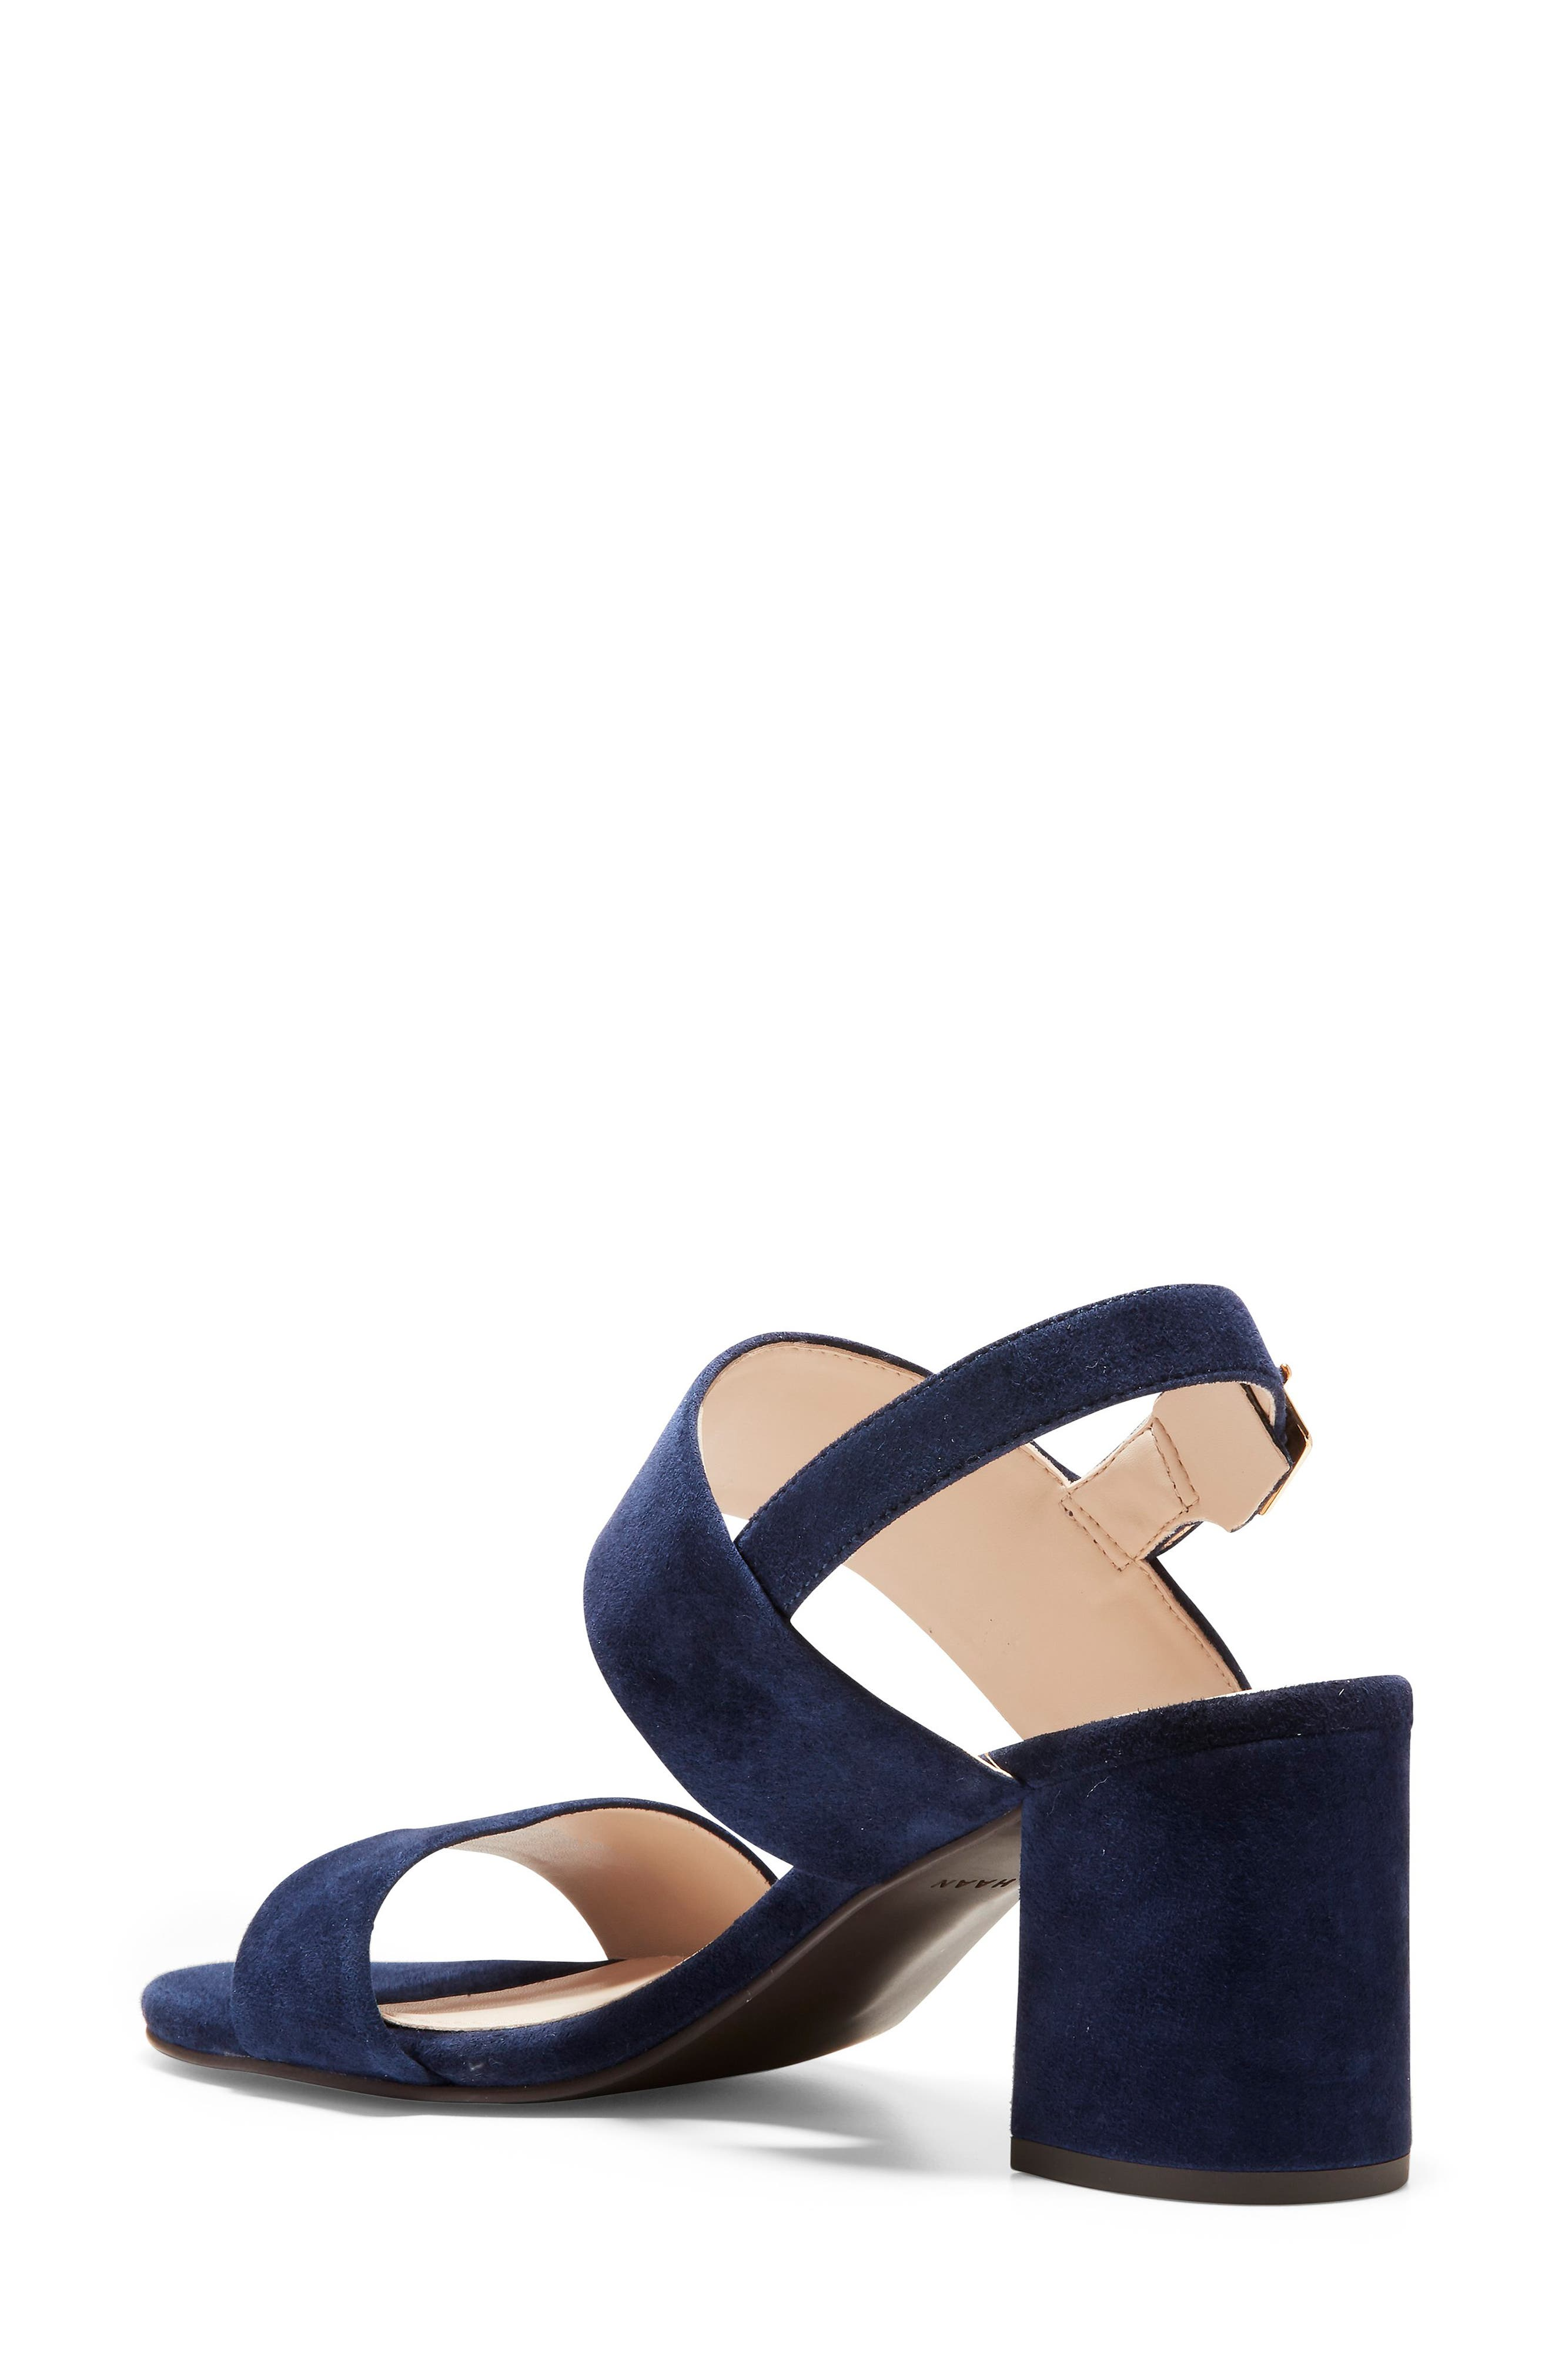 Avani Block Heel Sandal,                             Alternate thumbnail 2, color,                             MARINE BLUE SUEDE